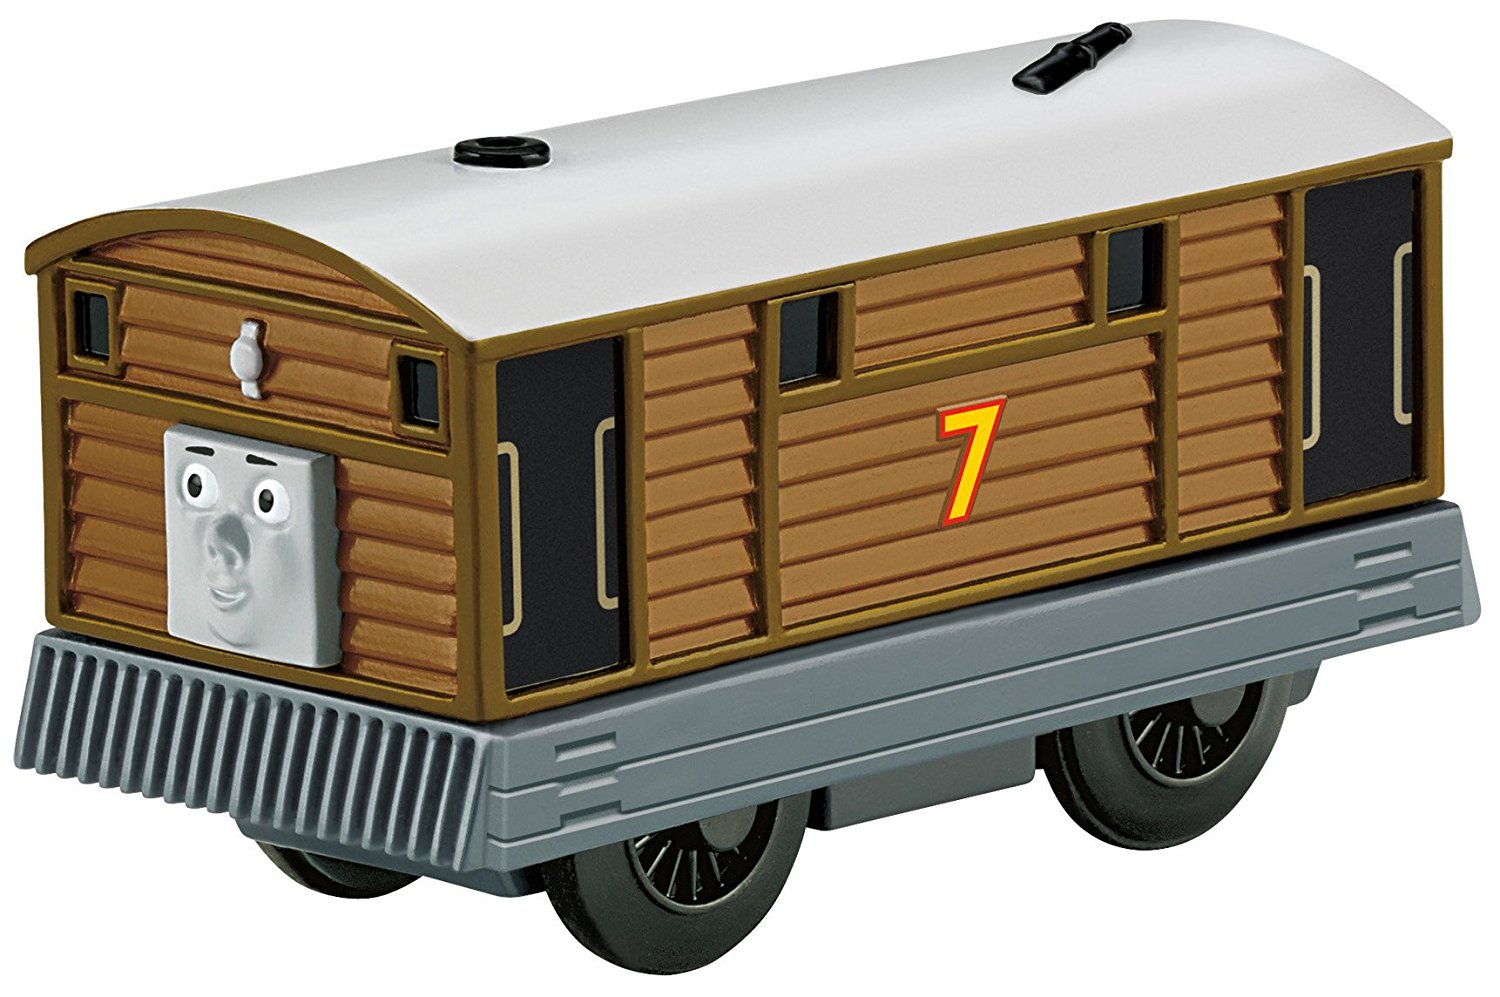 Fisher Price Thomas the Train Wooden Railway Battery-Operated Toby BDG10